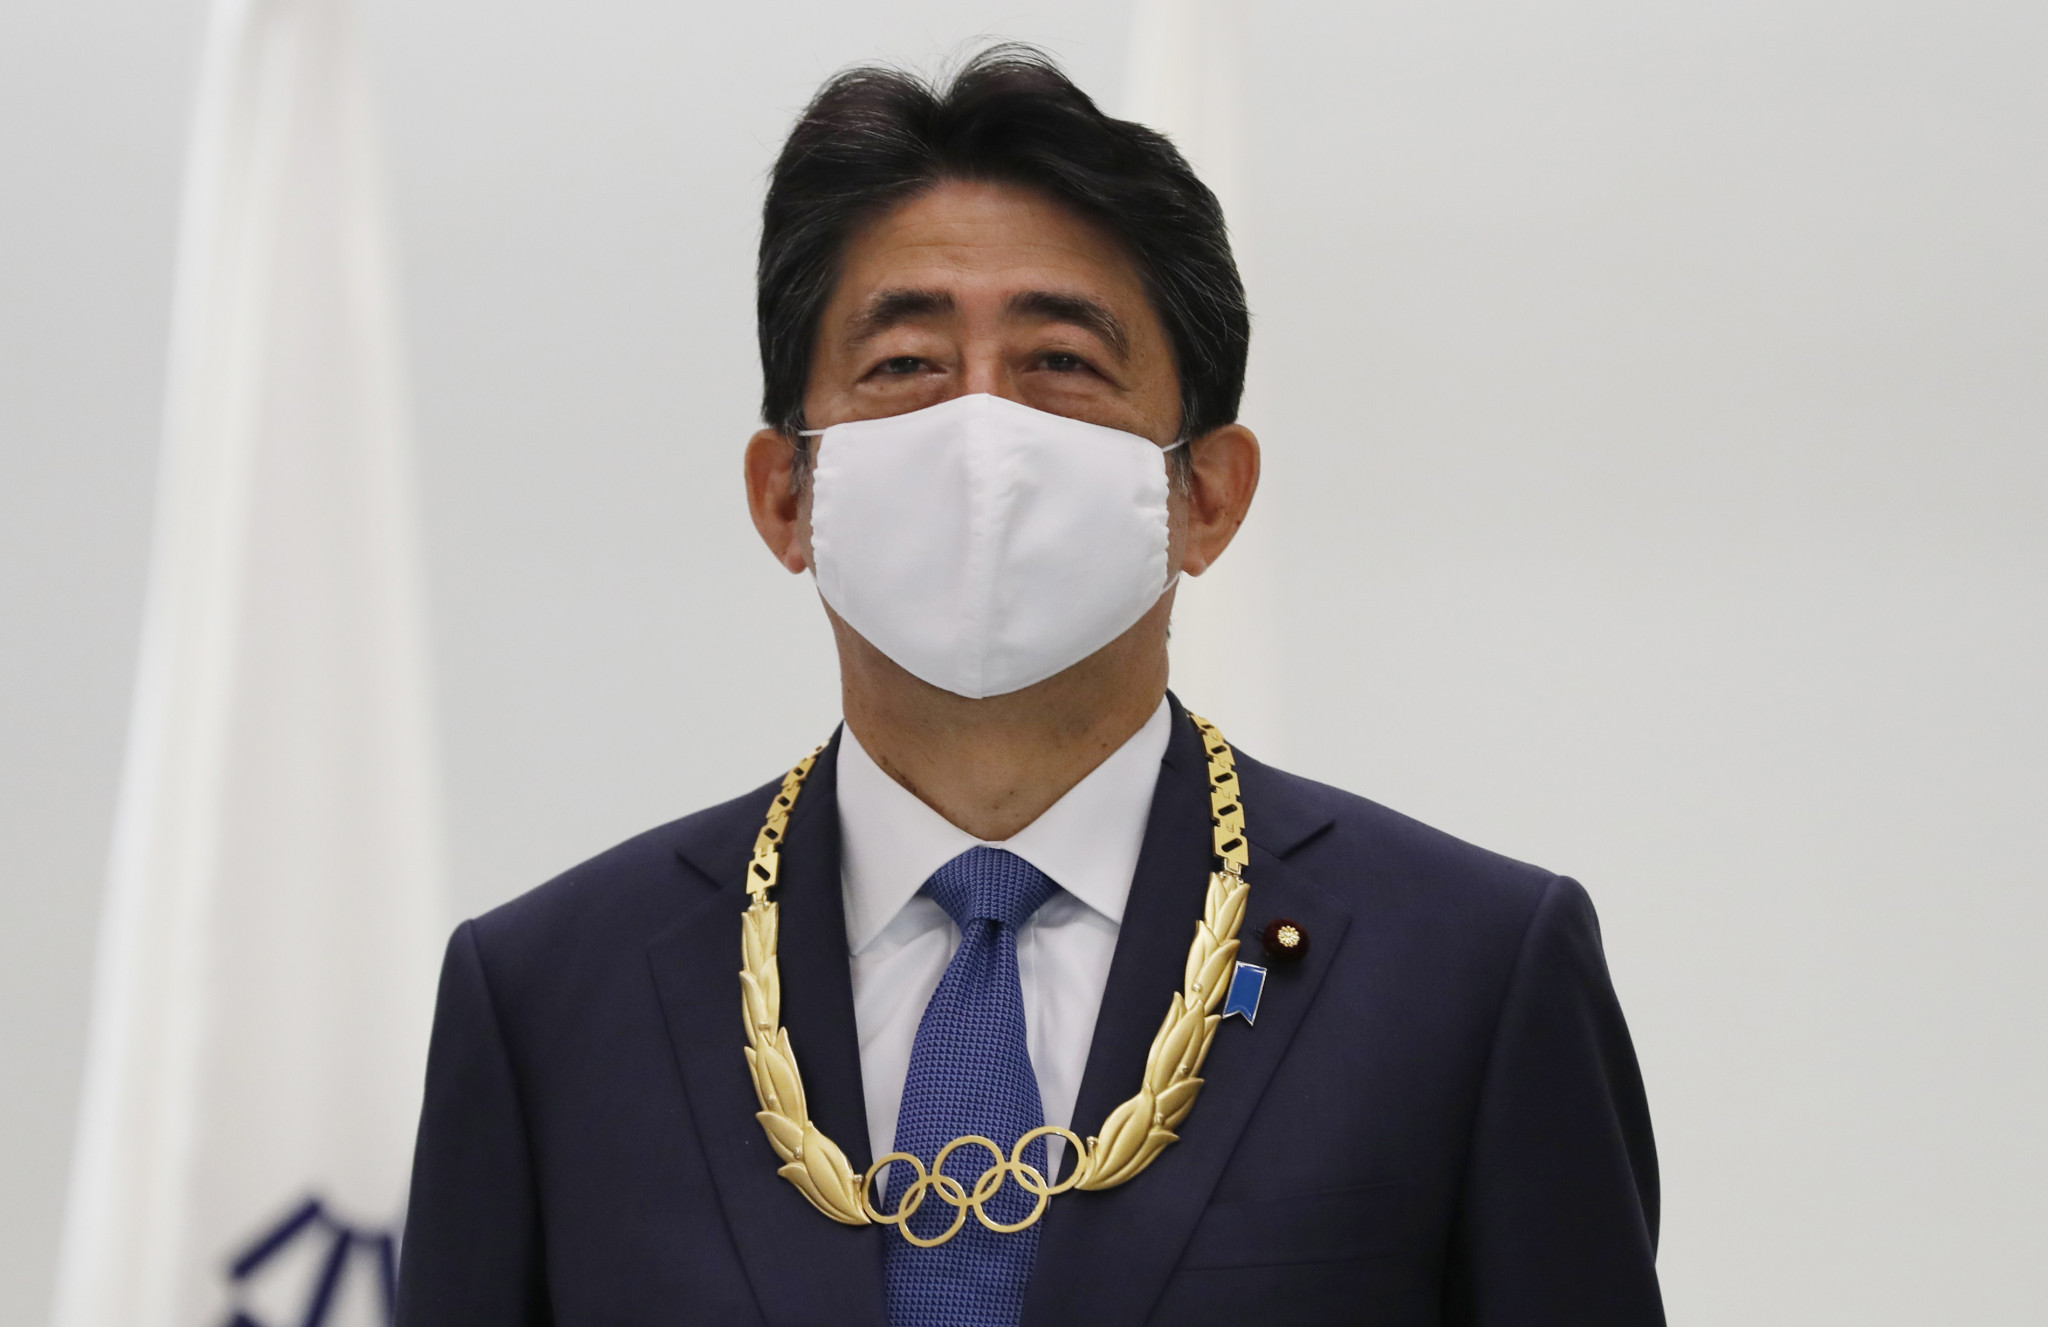 Former Japanese Prime Minister Abe presented with gold Olympic Order